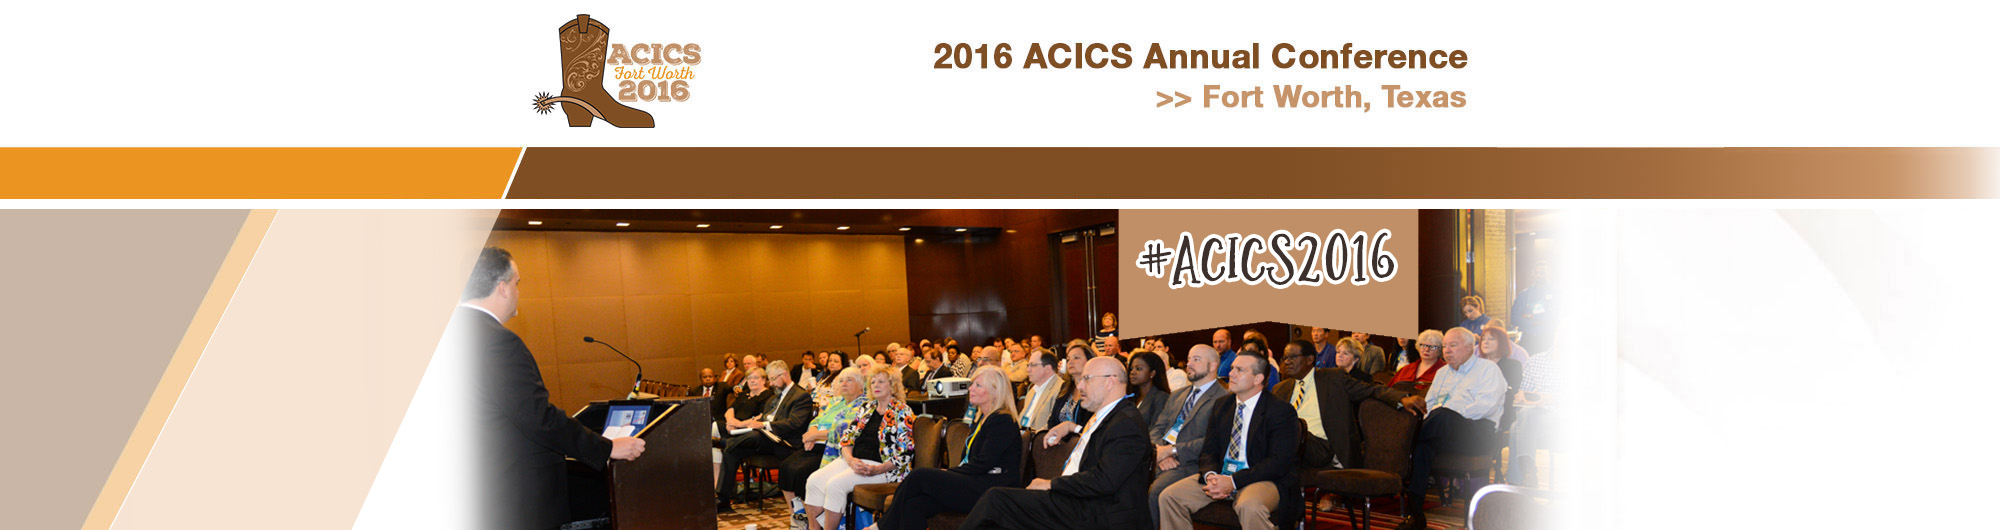 2016 ACICS Annual Conference